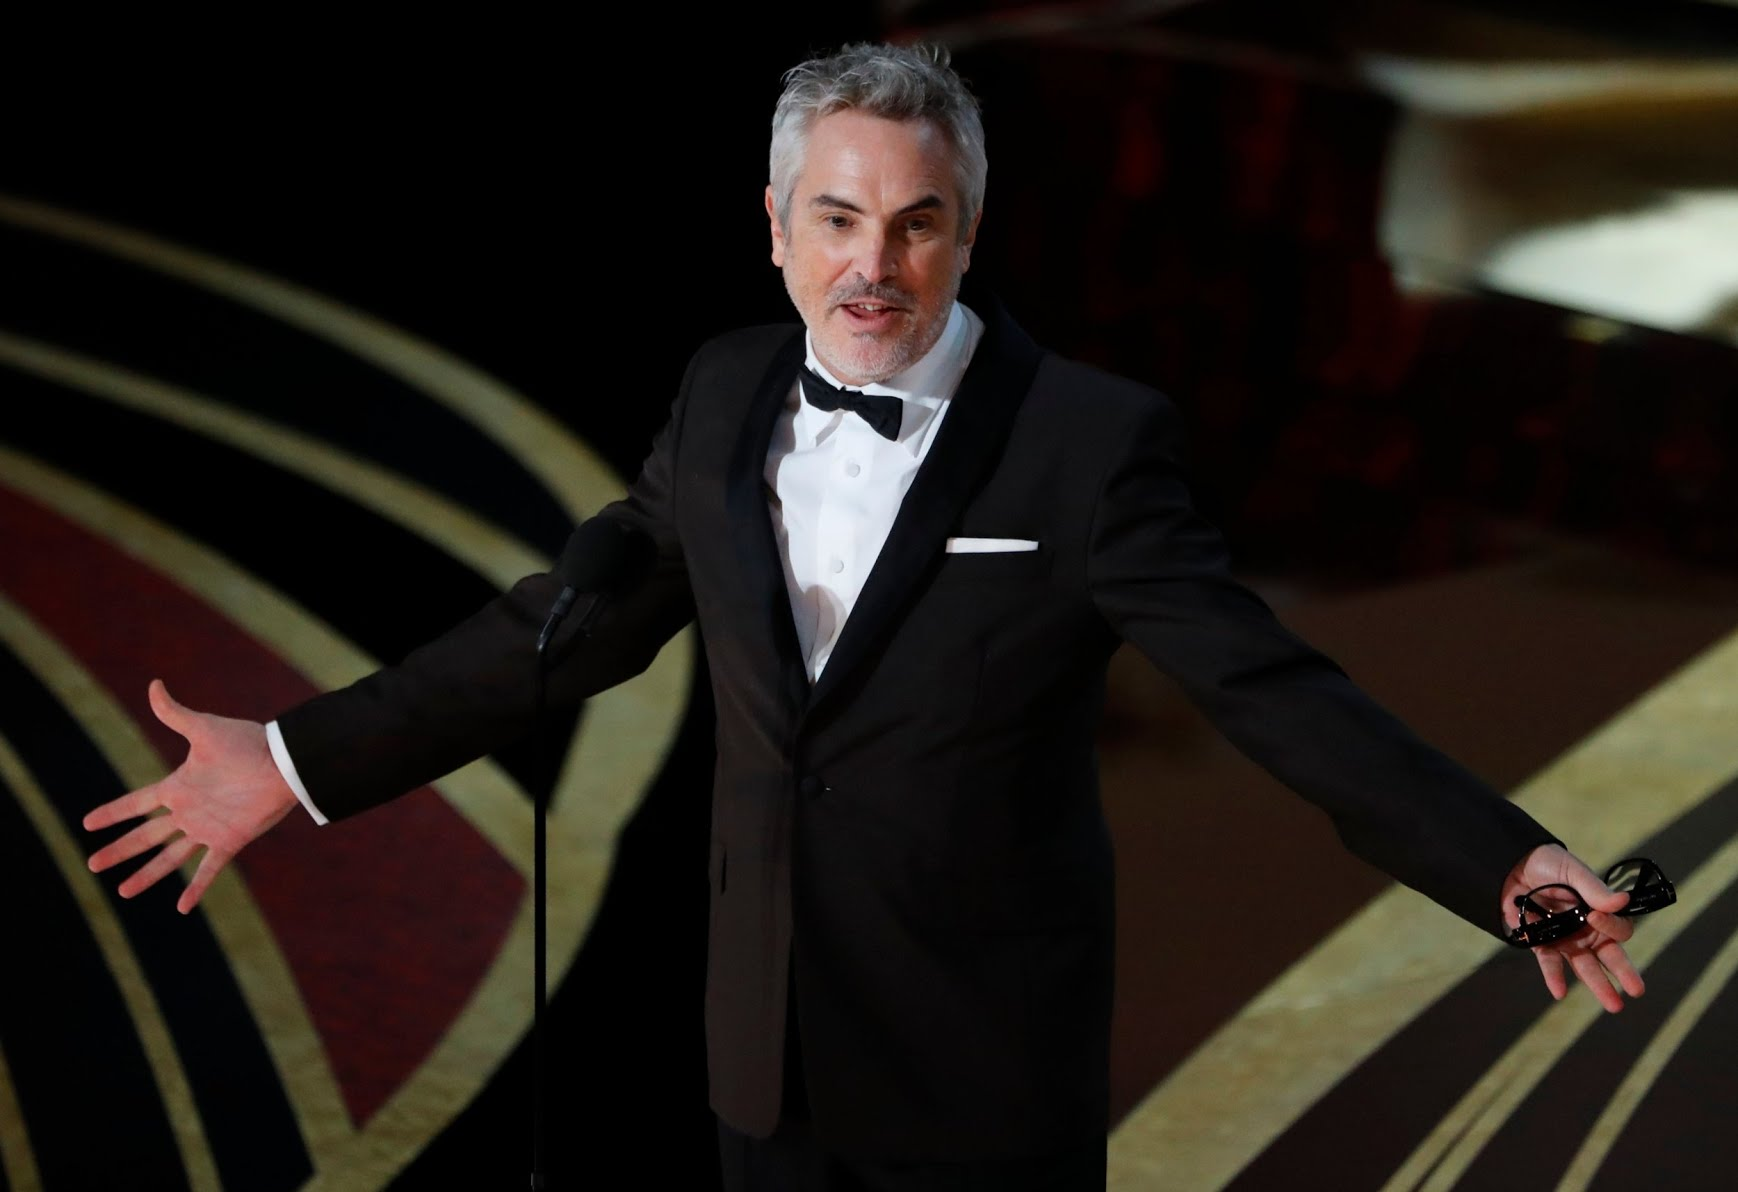 Alfonso Cuaron accepts the Best Director award for Roma